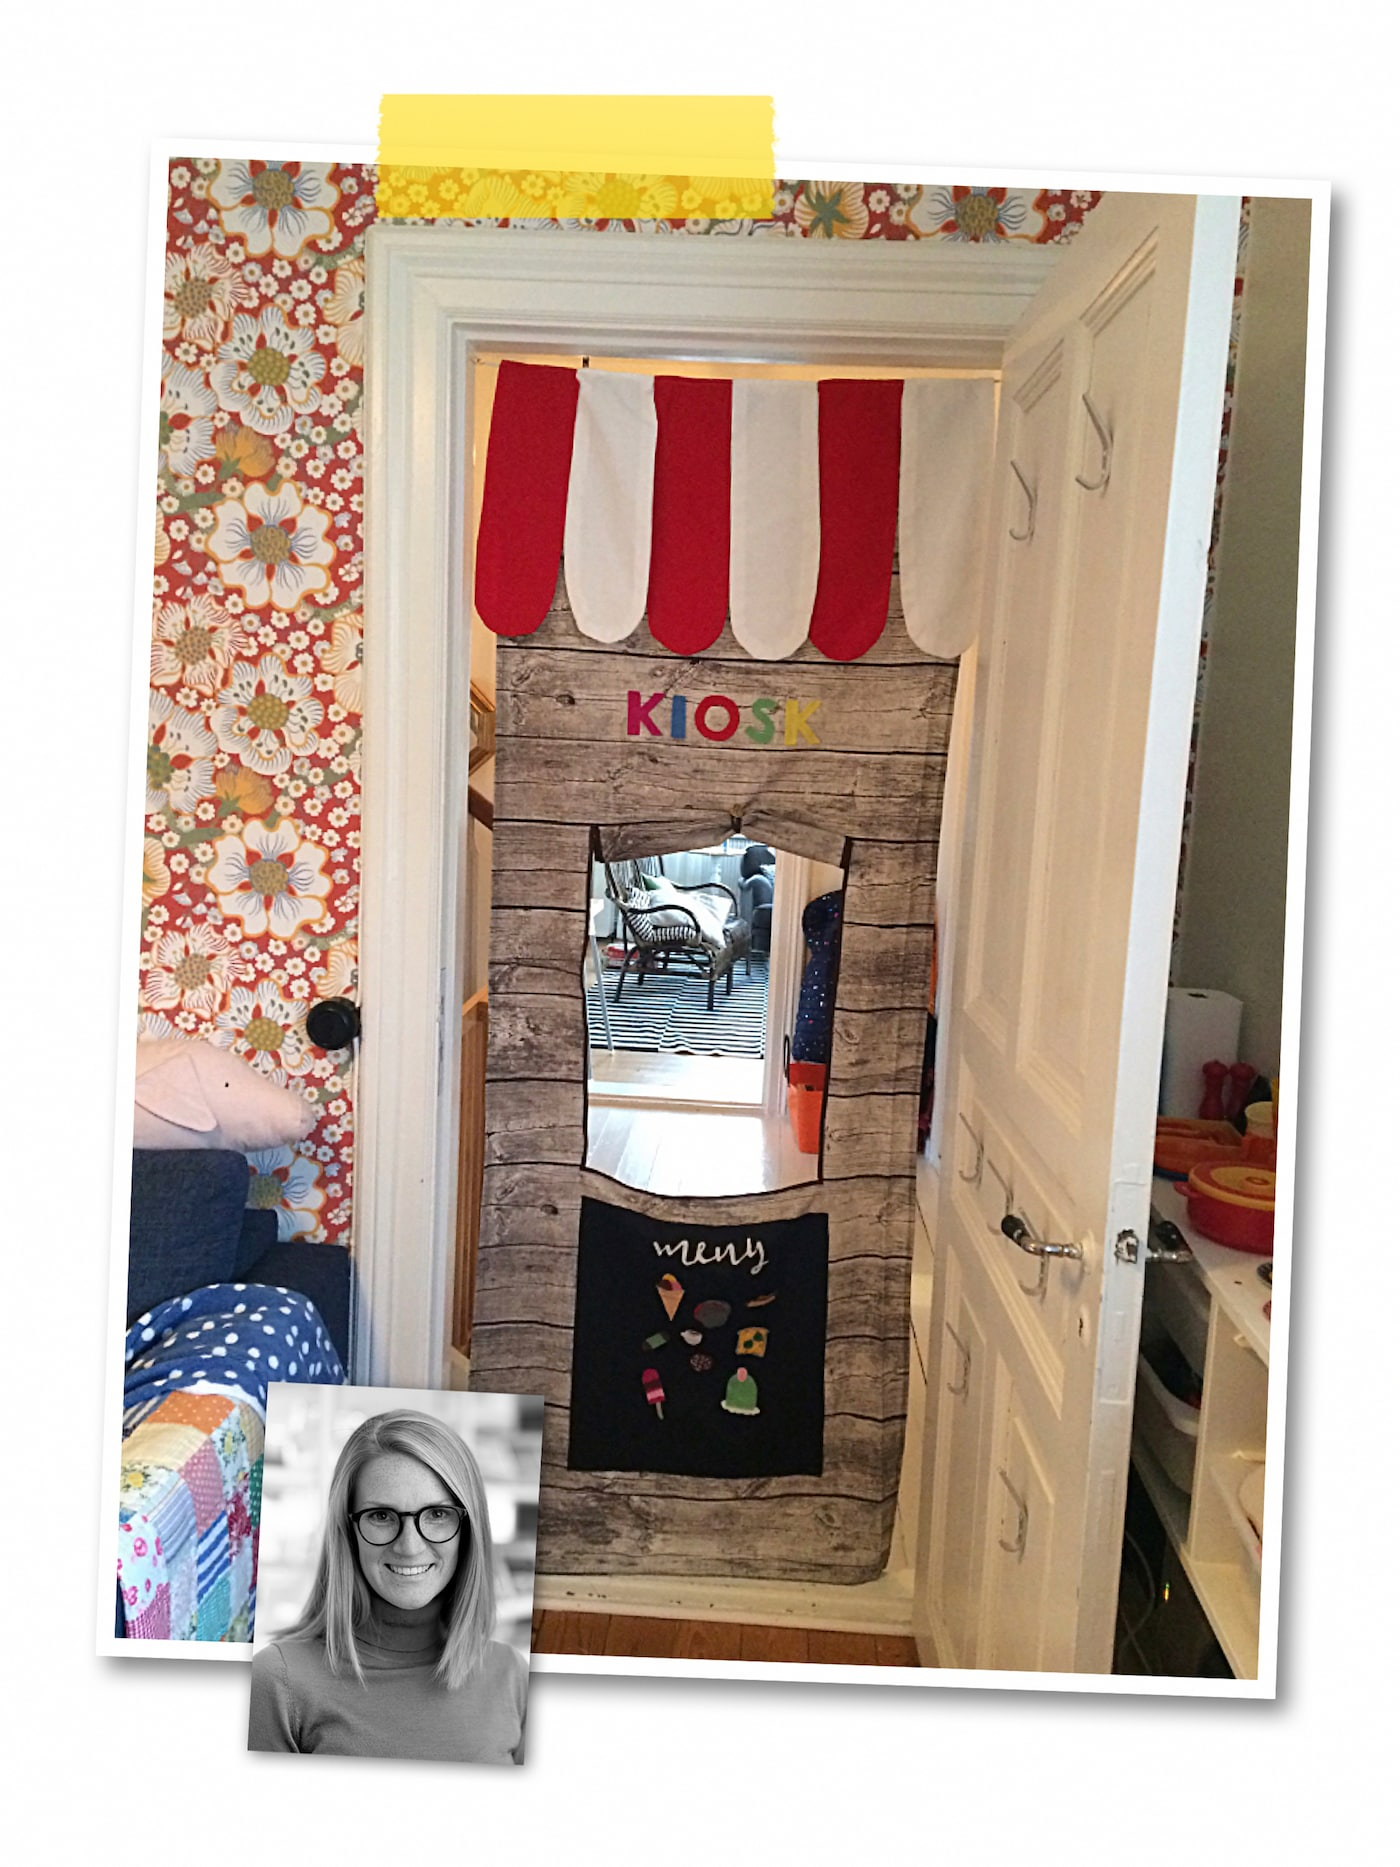 A two-image collage: a play curtain with a kiosk decor hung between two door posts, and an image of an IKEA co-worker.